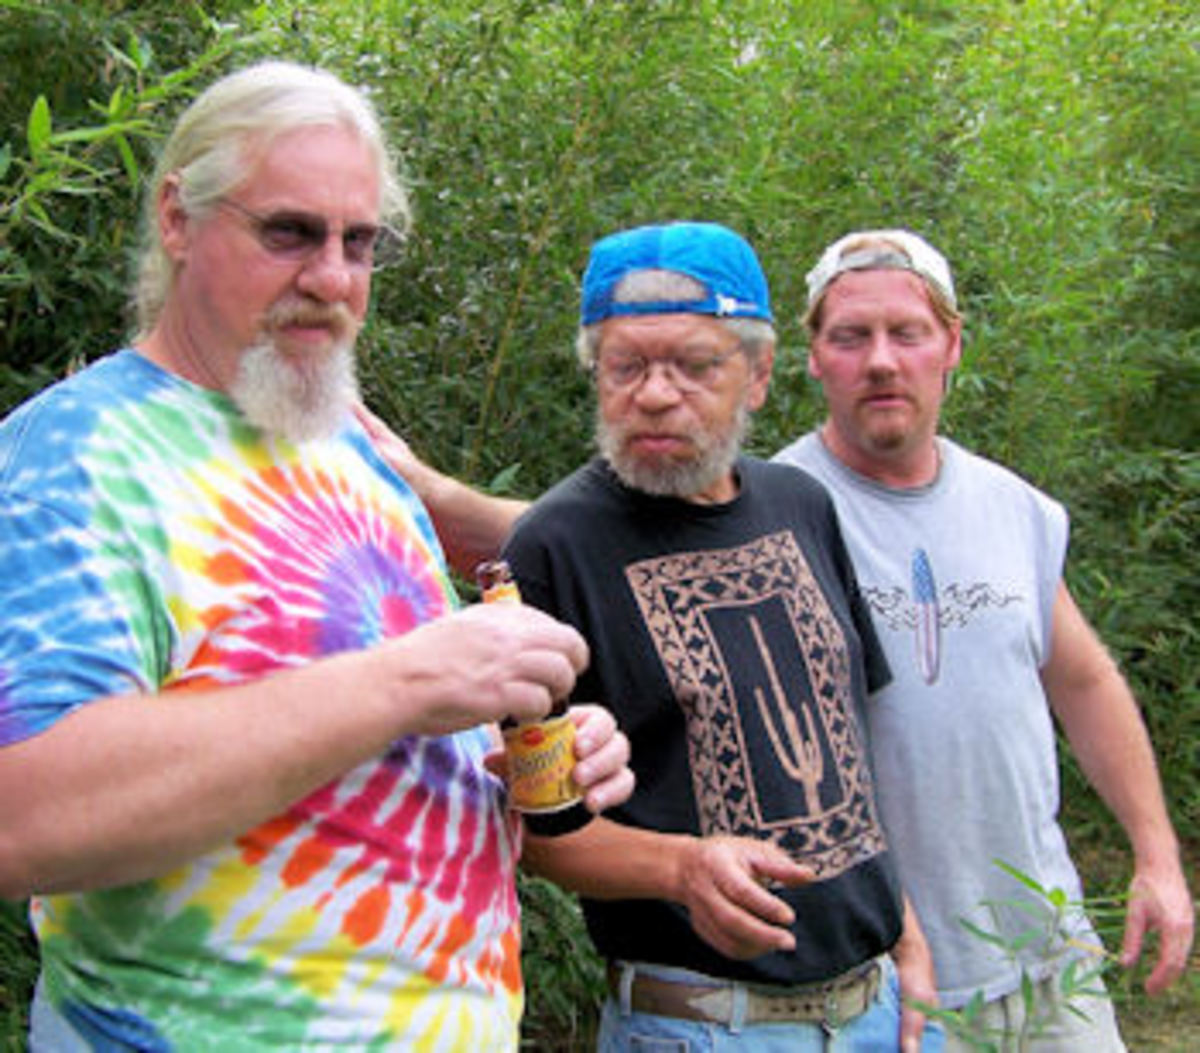 Bob Cargill, Geoff Outlaw, and Mark